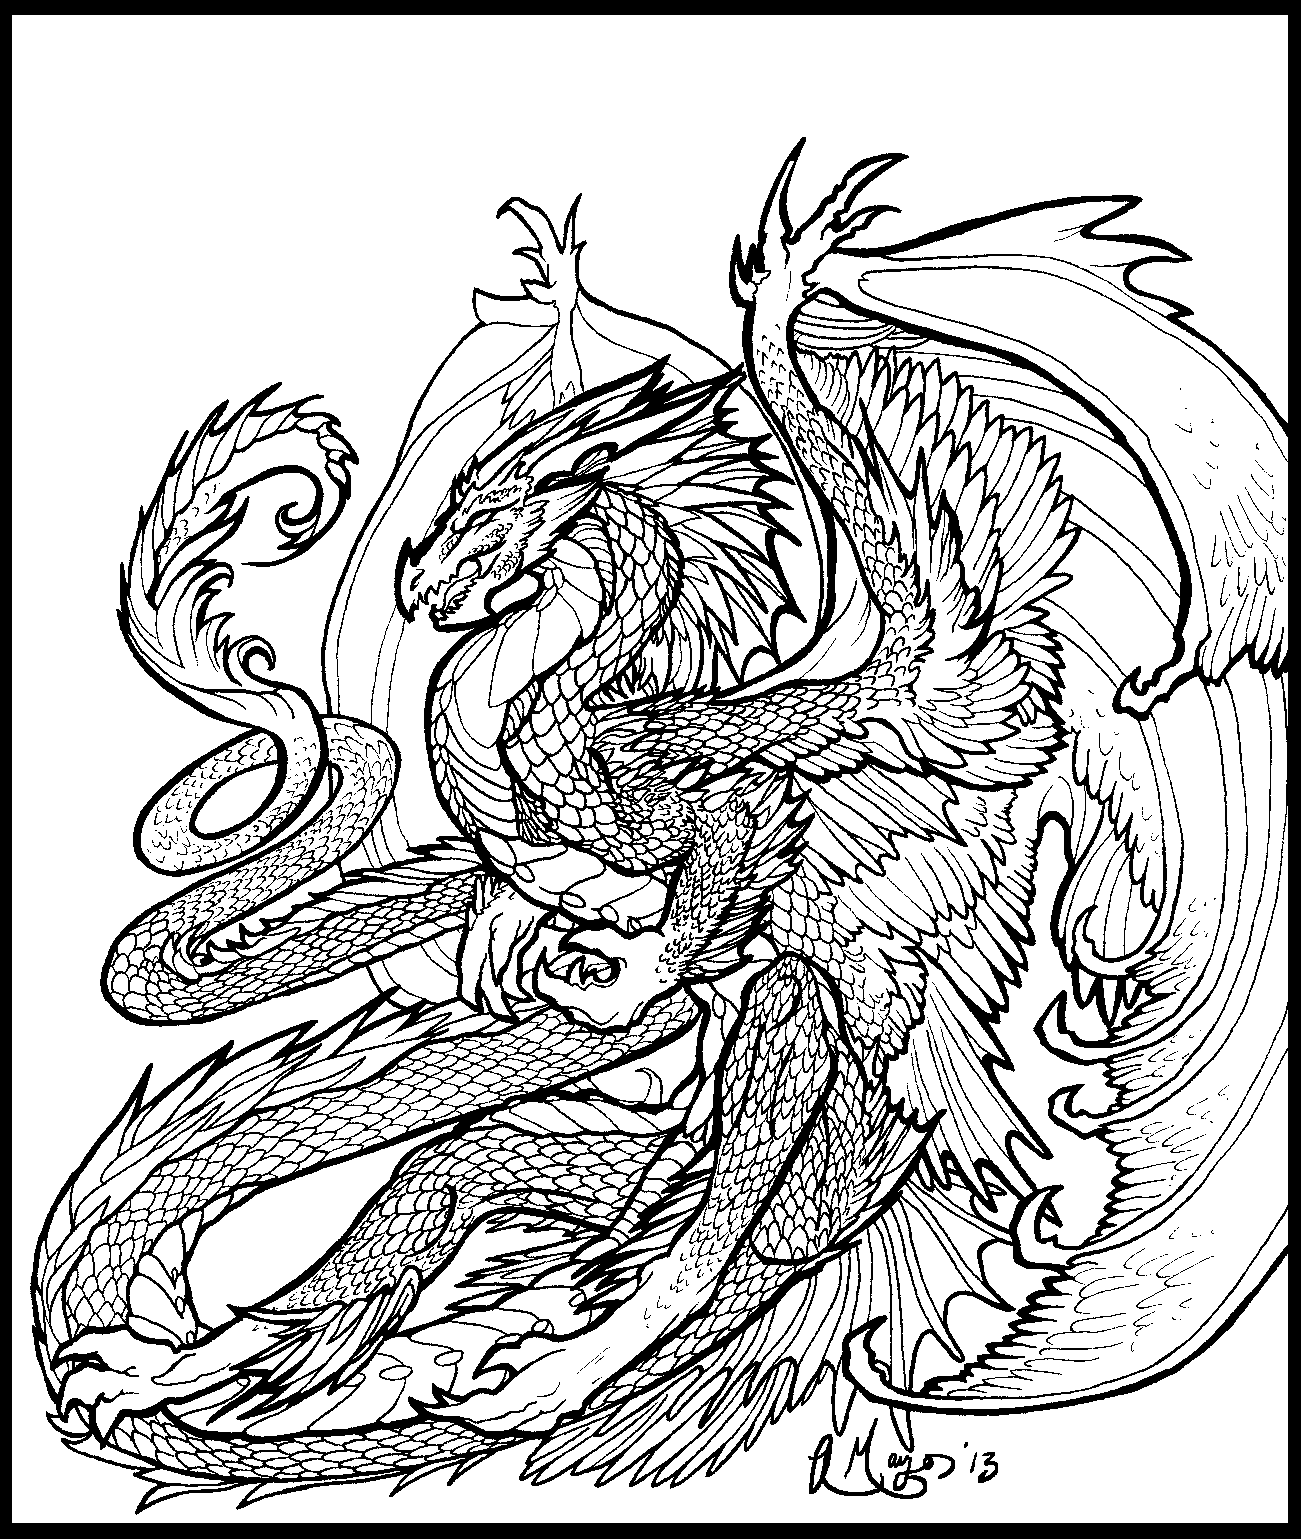 Dragon Dance 01 lineart by rachaelm5.deviantart.com on